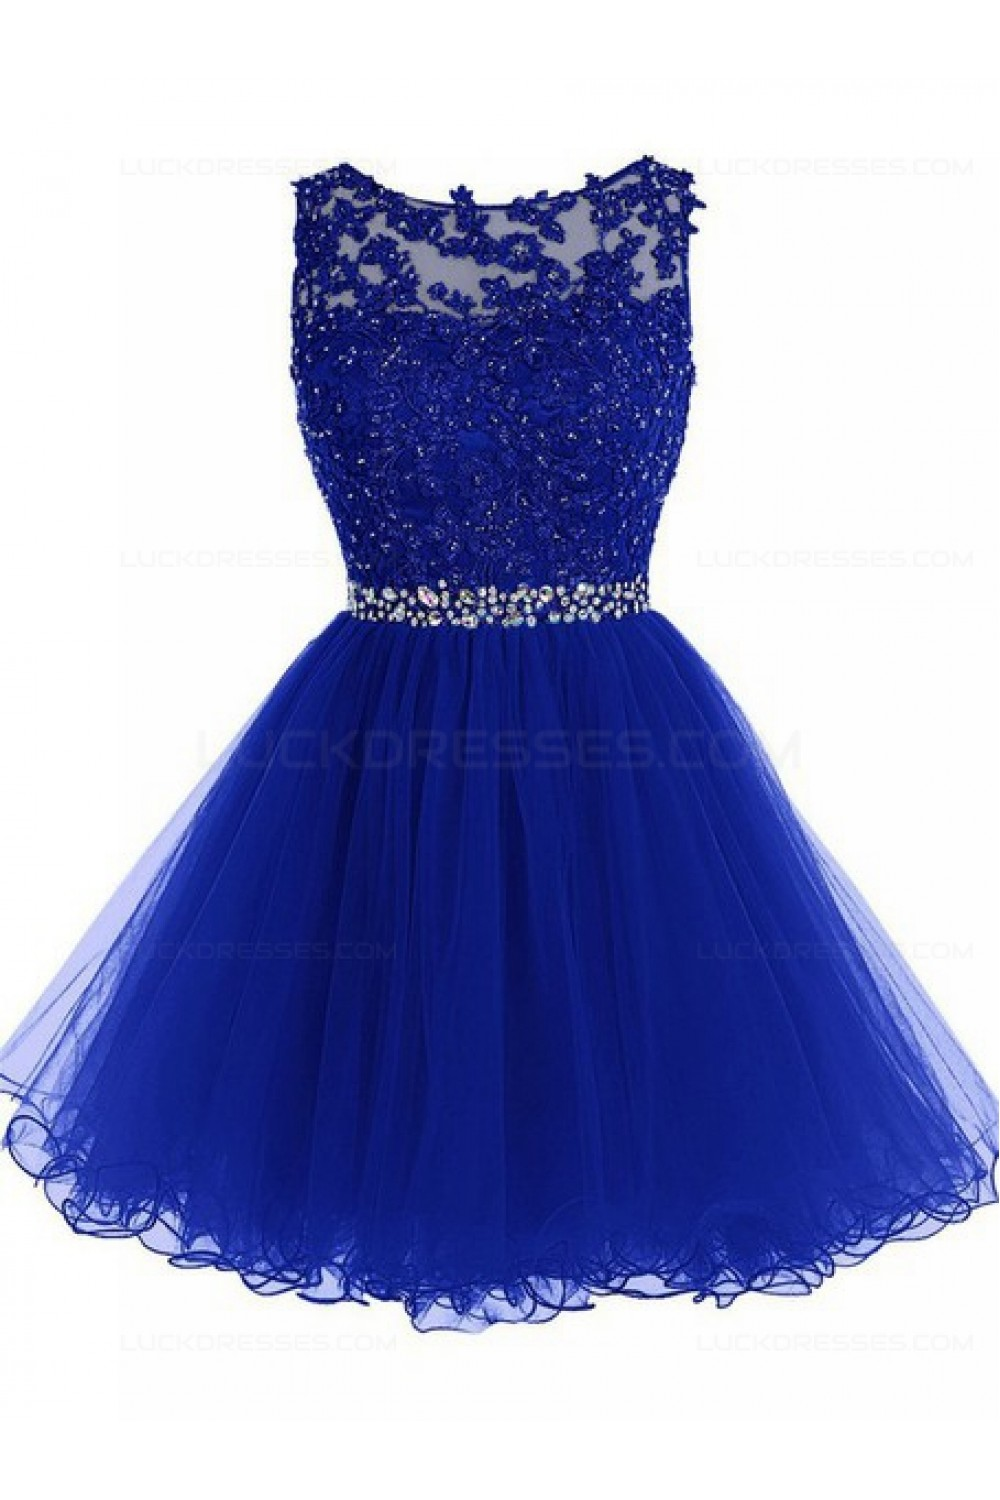 Beaded Short Royal Blue Lace Appliques Tulle Prom Evening Homecoming  Cocktail Dresses 6